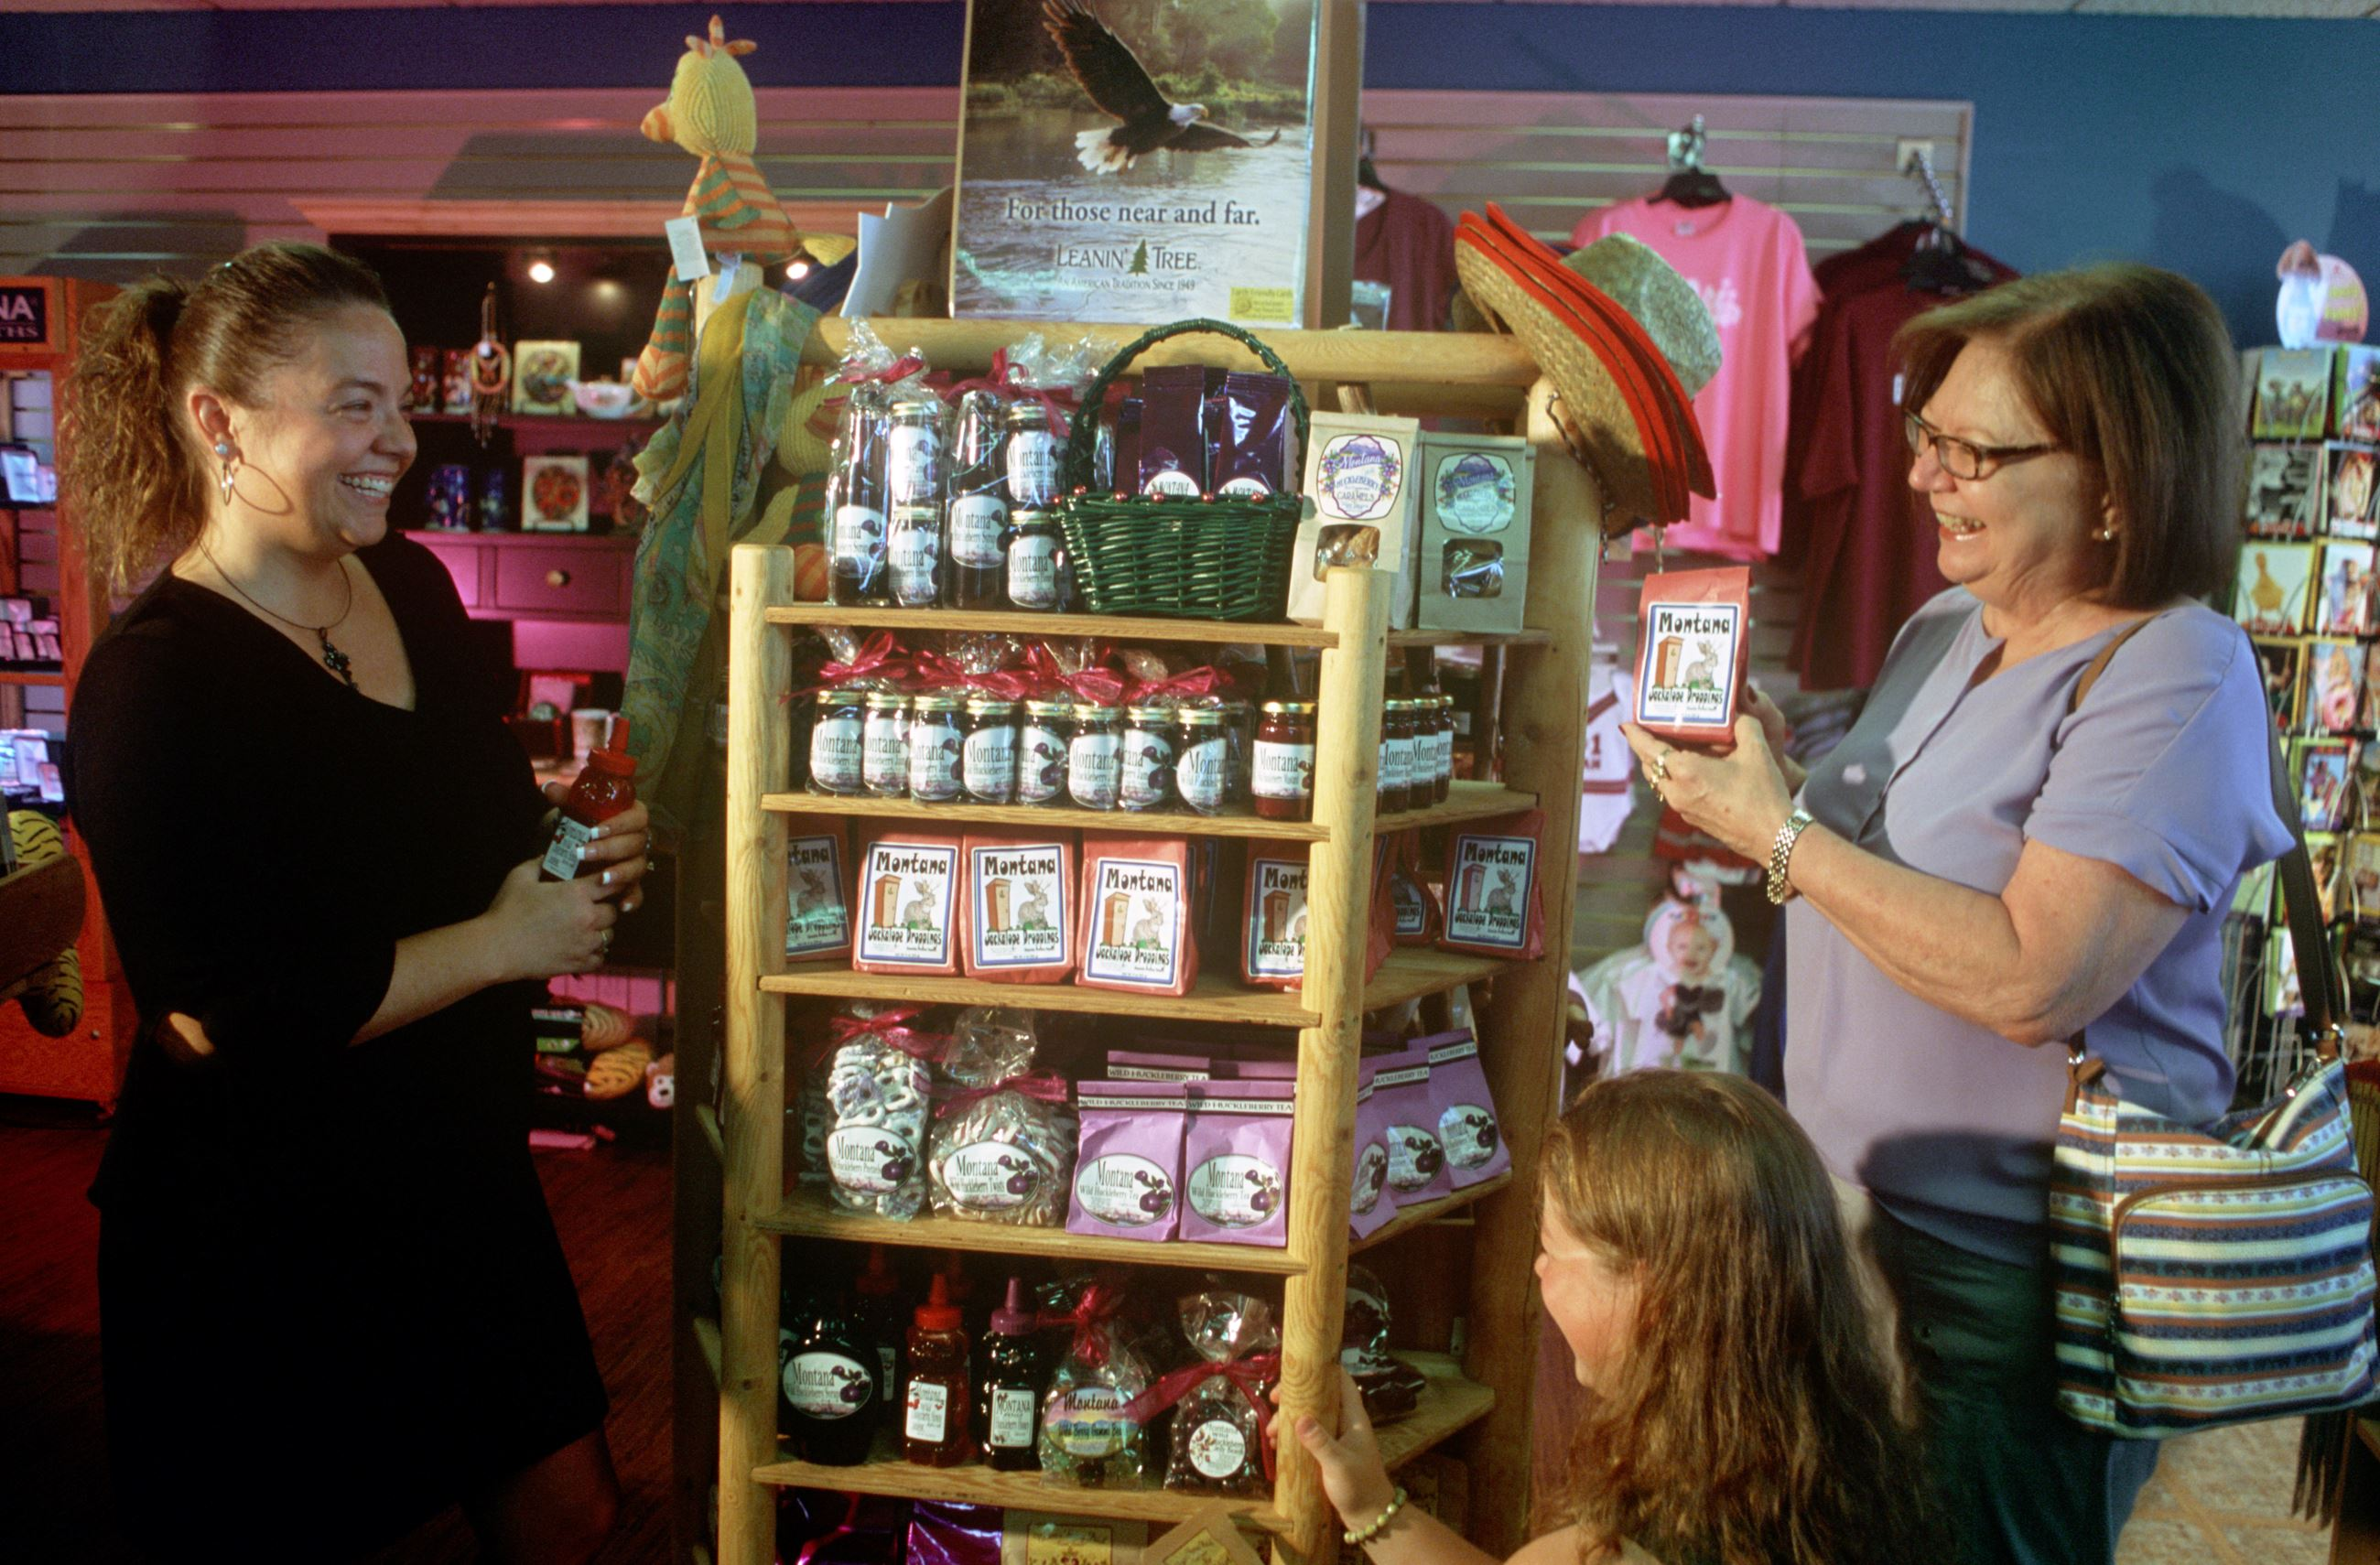 Gift shop 2 - customers looking at a display in gift shop